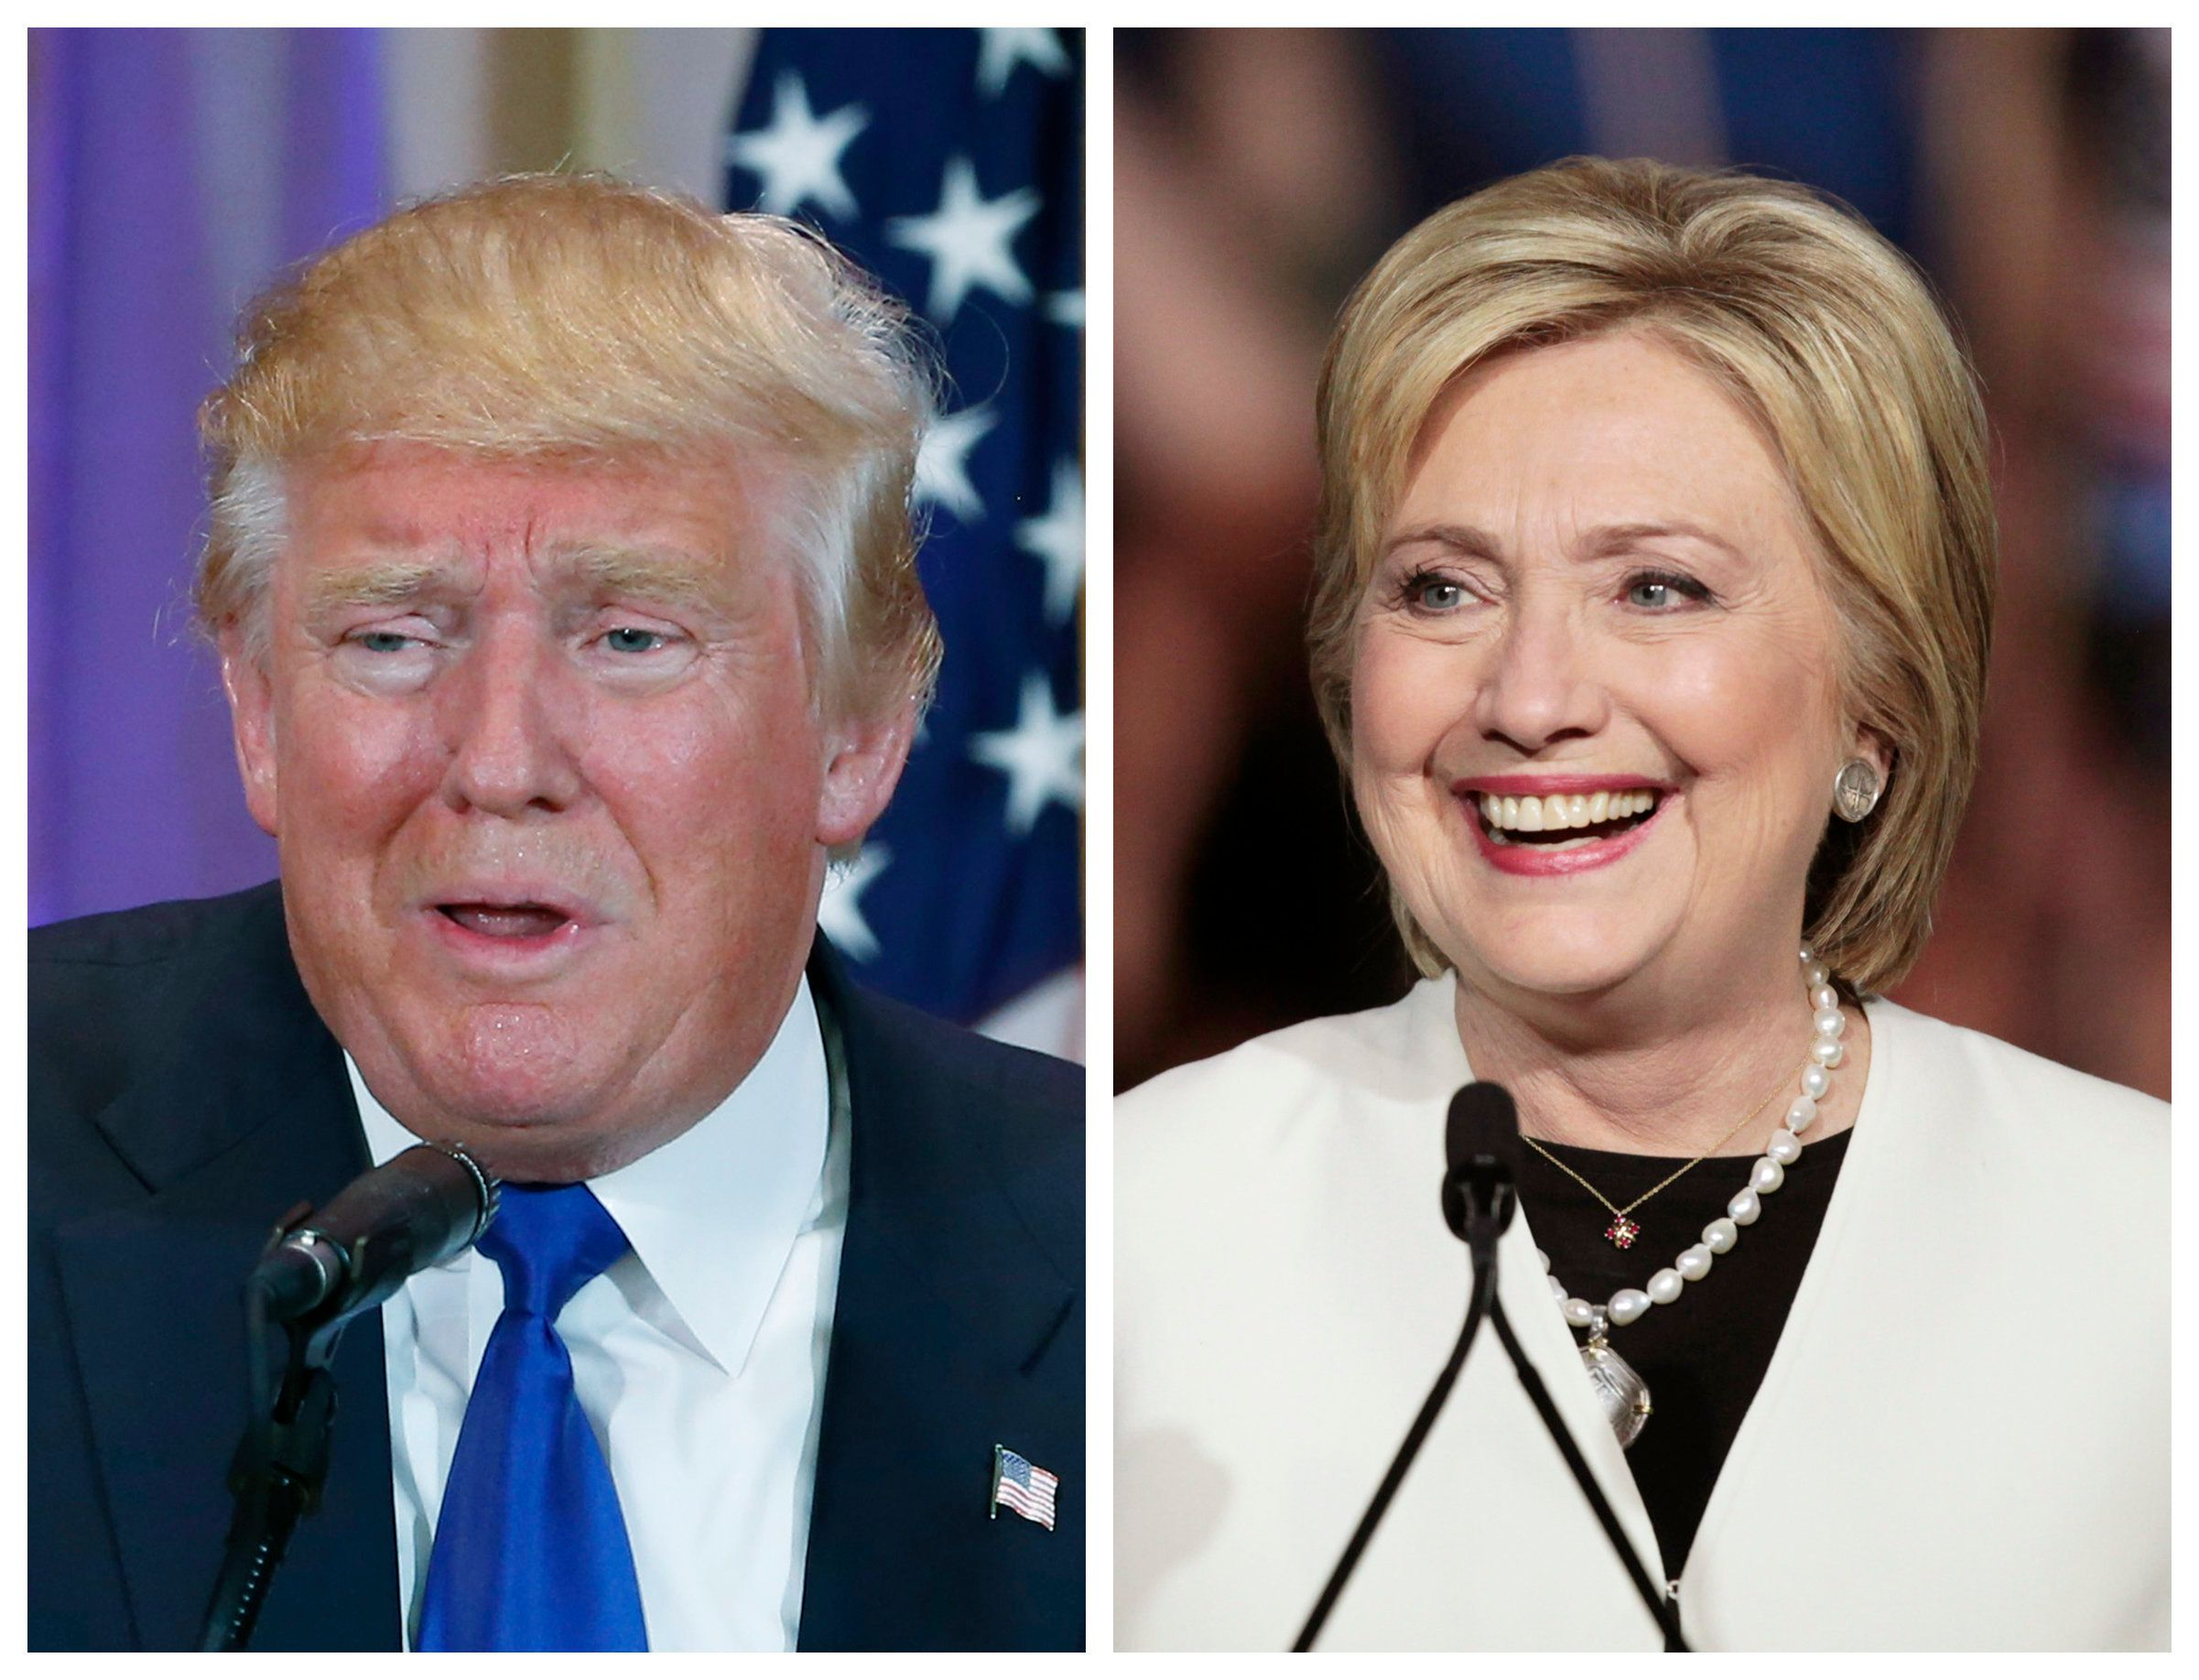 A combination photo shows Republican U.S. presidential candidate Donald Trump (L) in Palm Beach, Florida and Democratic U.S. presidential candidate Hillary Clinton (R) in Miami, Florida at their respective Super Tuesday primaries campaign events on March 1, 2016. Republican Donald Trump and Democrat Hillary Clinton rolled up a series of wins on Tuesday, as the two presidential front-runners took a step toward capturing their parties' nominations on the 2016 campaign's biggest day of state-by-state primary voting.  REUTERS/Scott Audette (L), Javier Galeano (R)